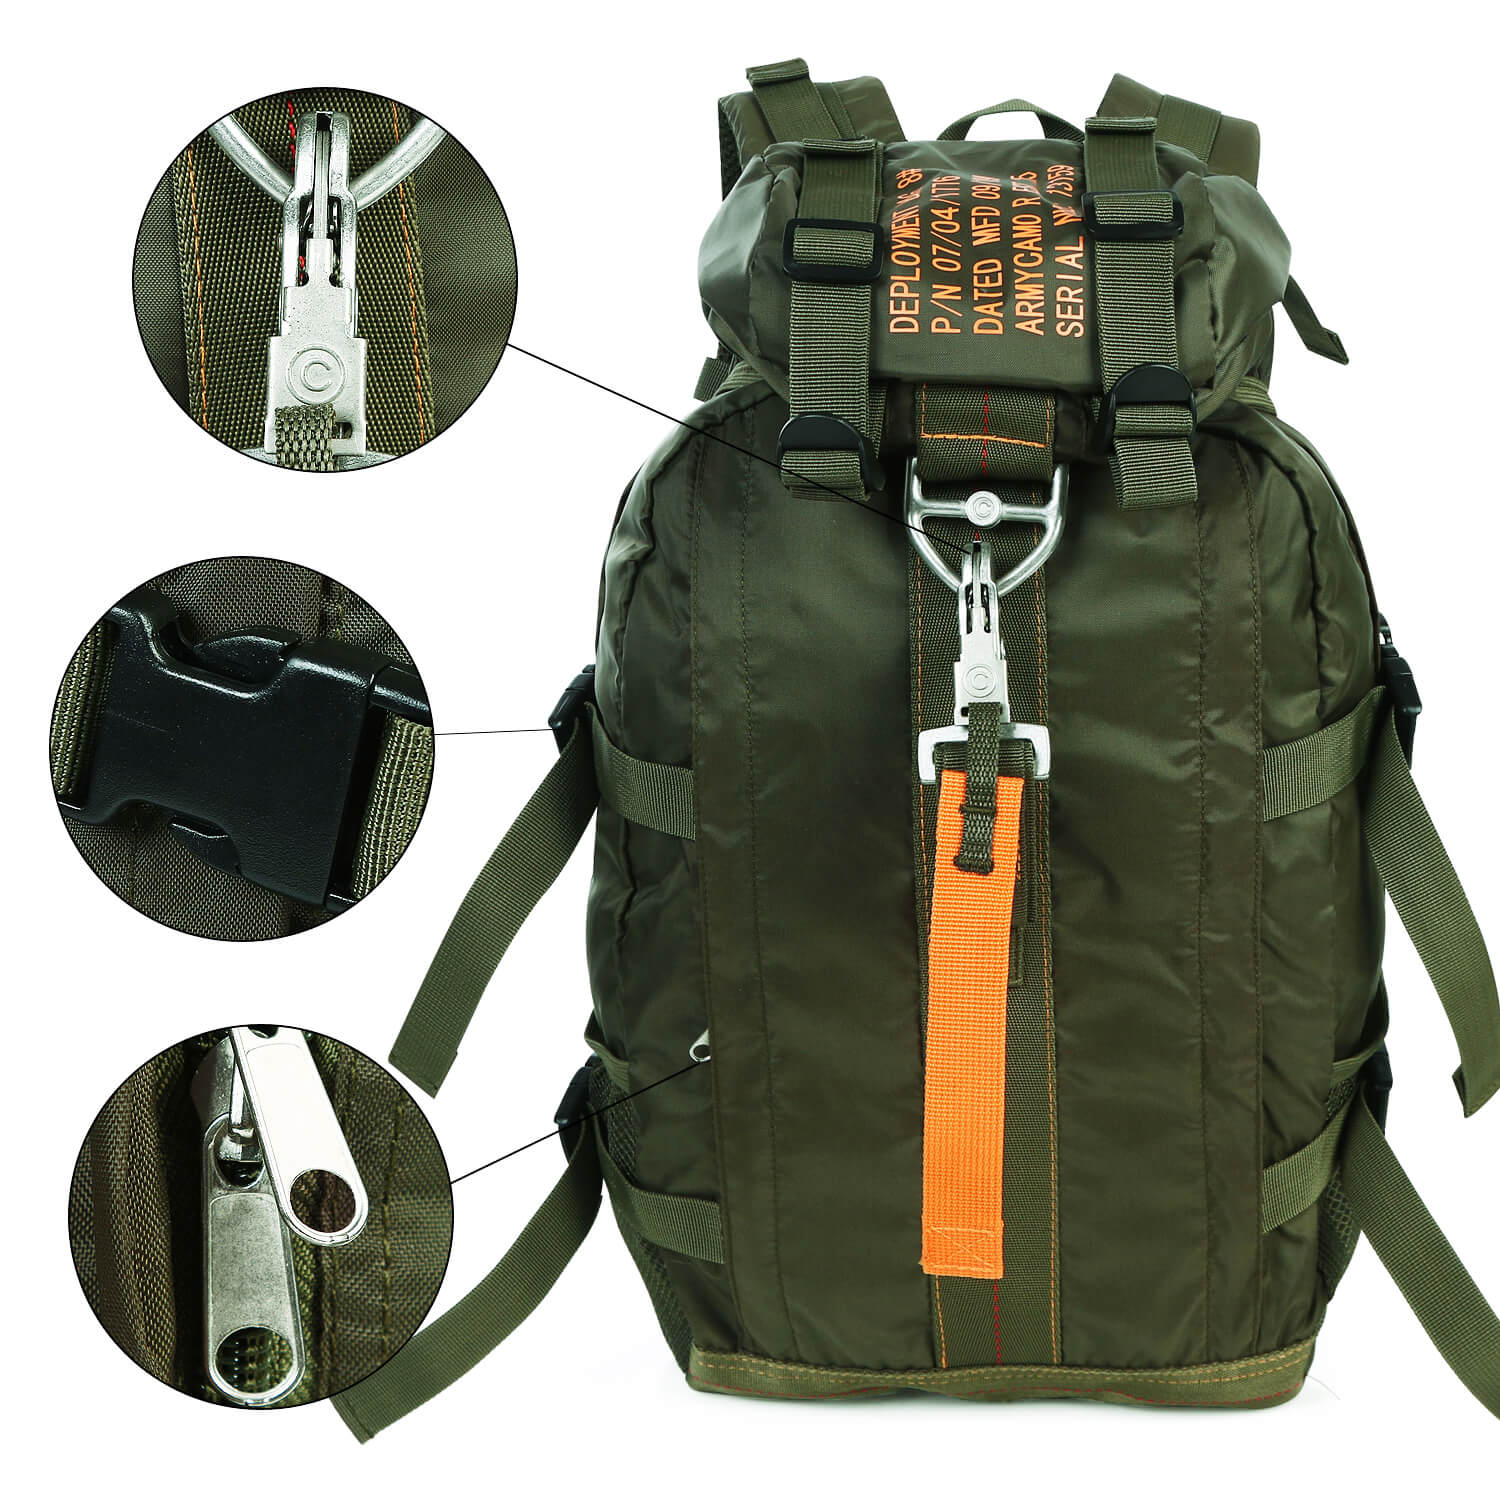 Air Force Parachute Buckles Nylon Tactical Deployment Bag